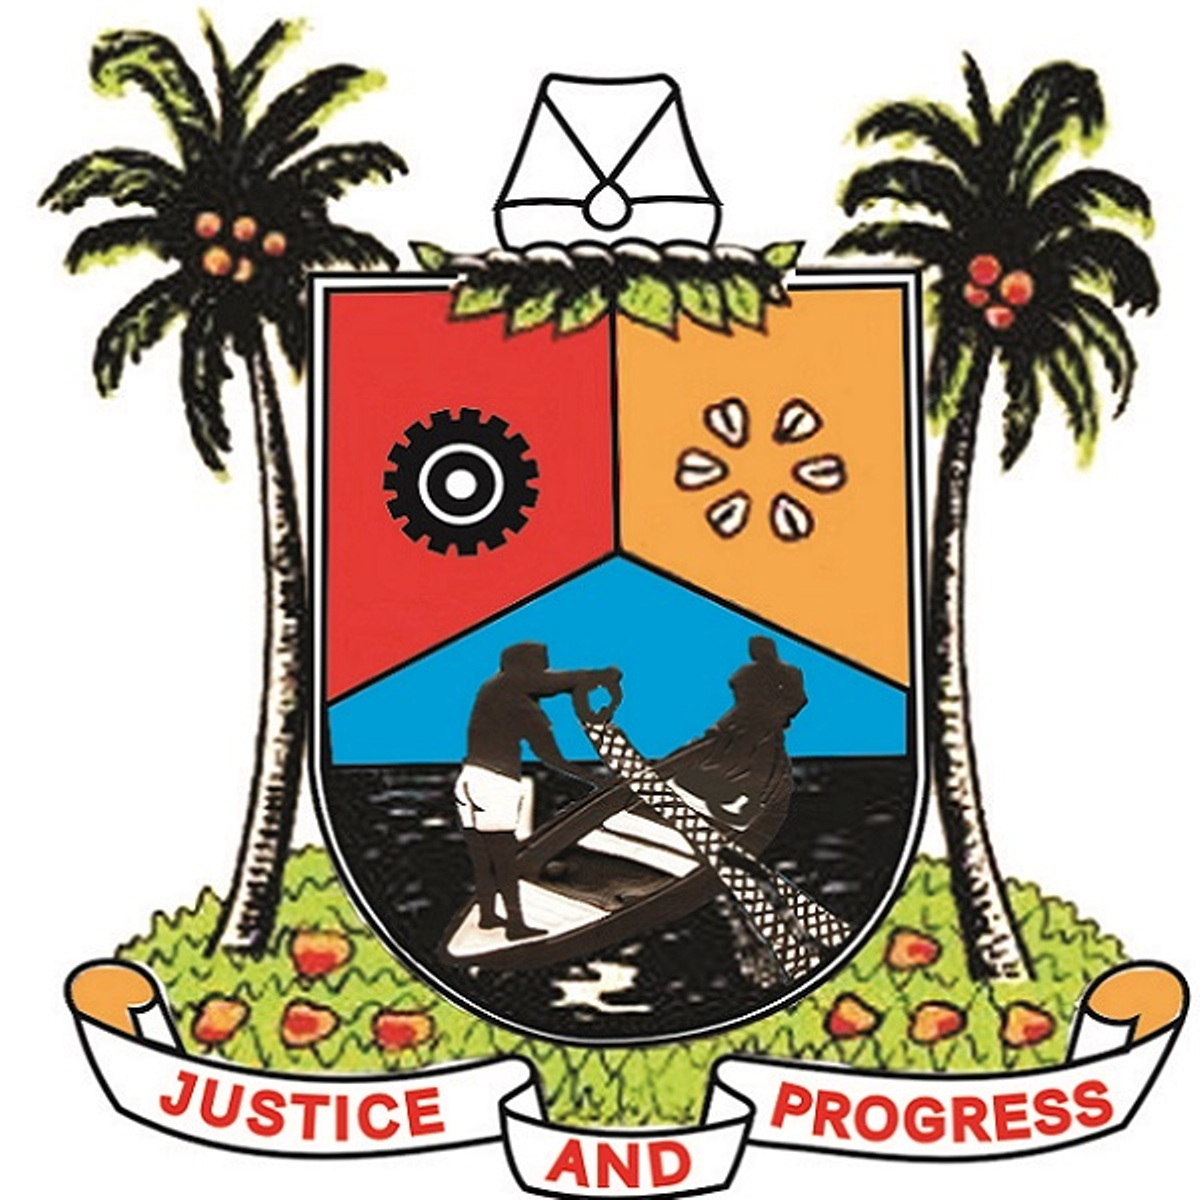 Lagos secures 9m loan to fund project